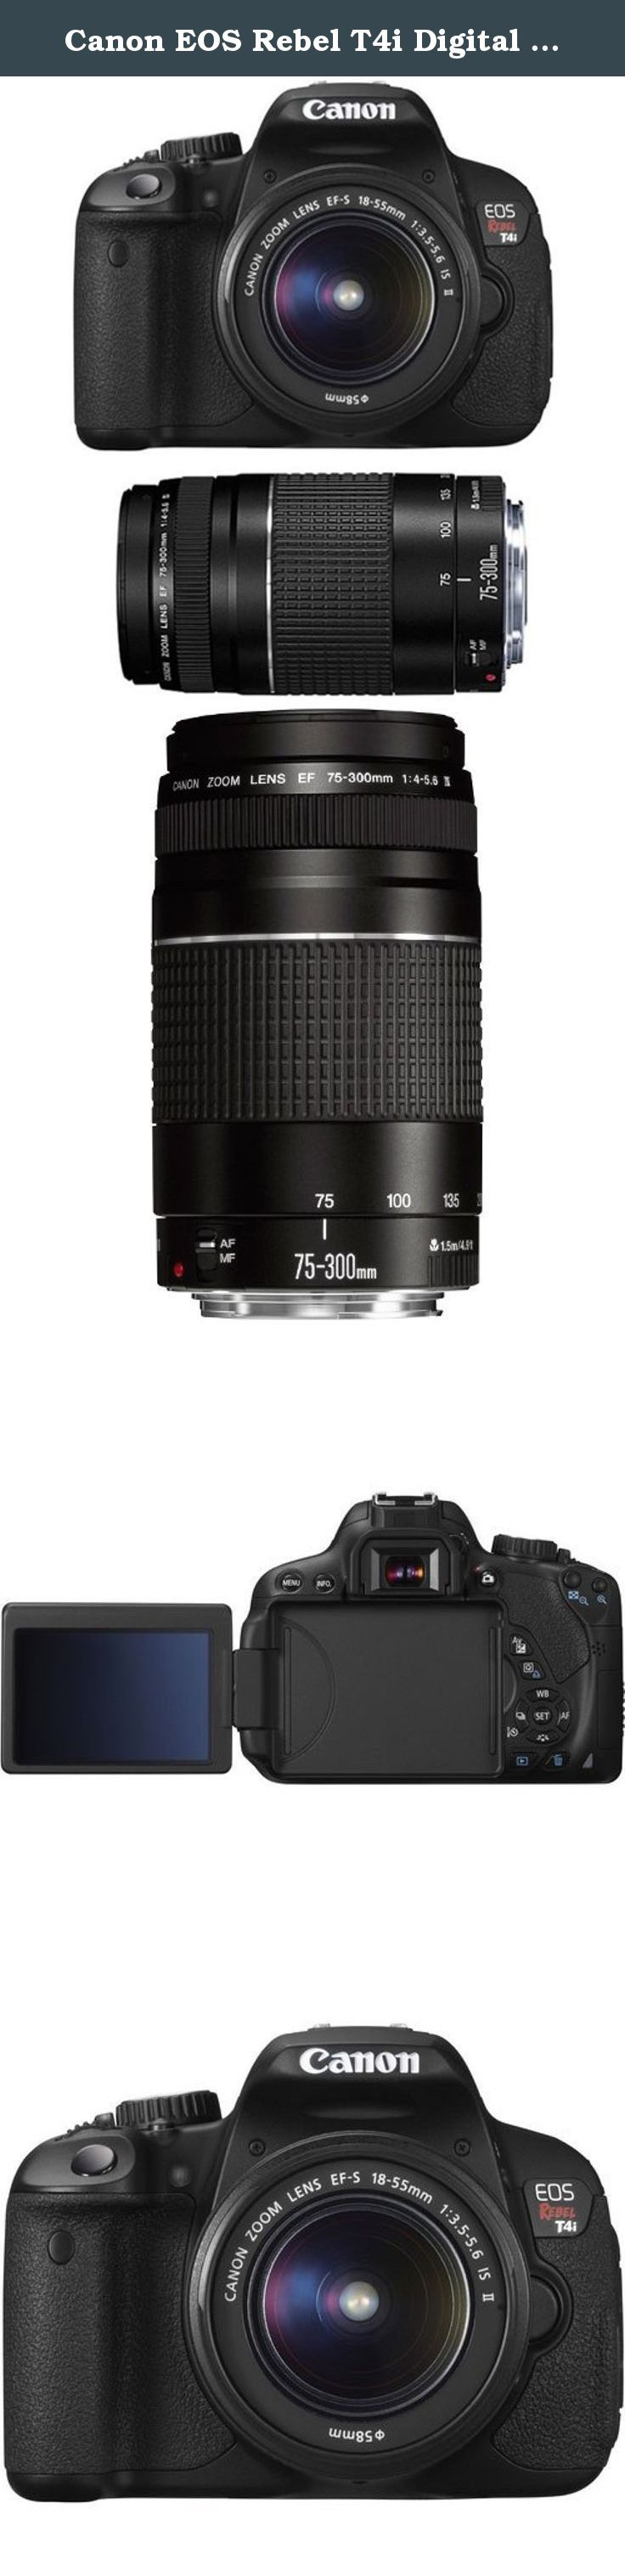 Canon EOS Rebel T4i Digital SLR Camera Body & EF-S 18-55mm IS II Lens with EF 75-300mm f/4-5.6 III Zoom Lens. The Canon EOS Rebel T4i delivers phenomenal image quality, high performance, and fast, intuitive operation. This Rebel amps up the speed with the powerful DIGIC 5 Image Processor that helps make high-speed continuous shooting of up to 5.0 fps possible. An 18.0 Megapixel CMOS sensor ensures that every image is shot in superb, high resolution; and an extended ISO range of 100-12800...